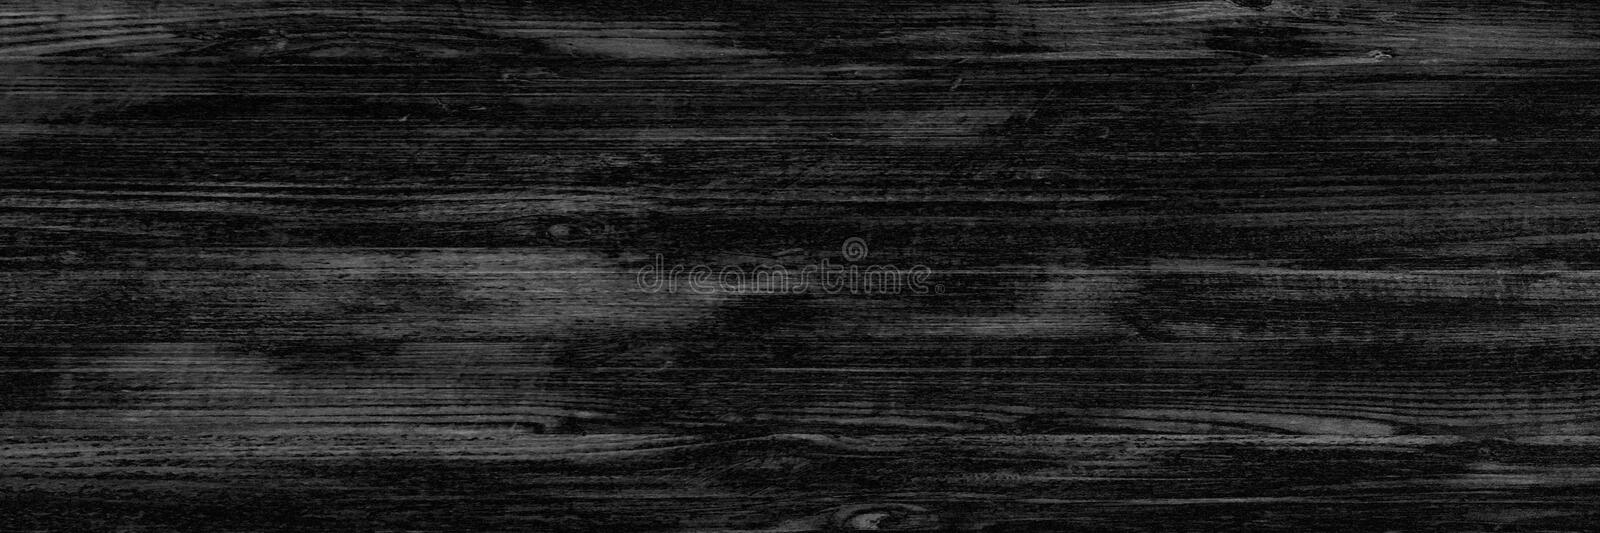 Black wood texture, dark wooden abstract background royalty free stock images